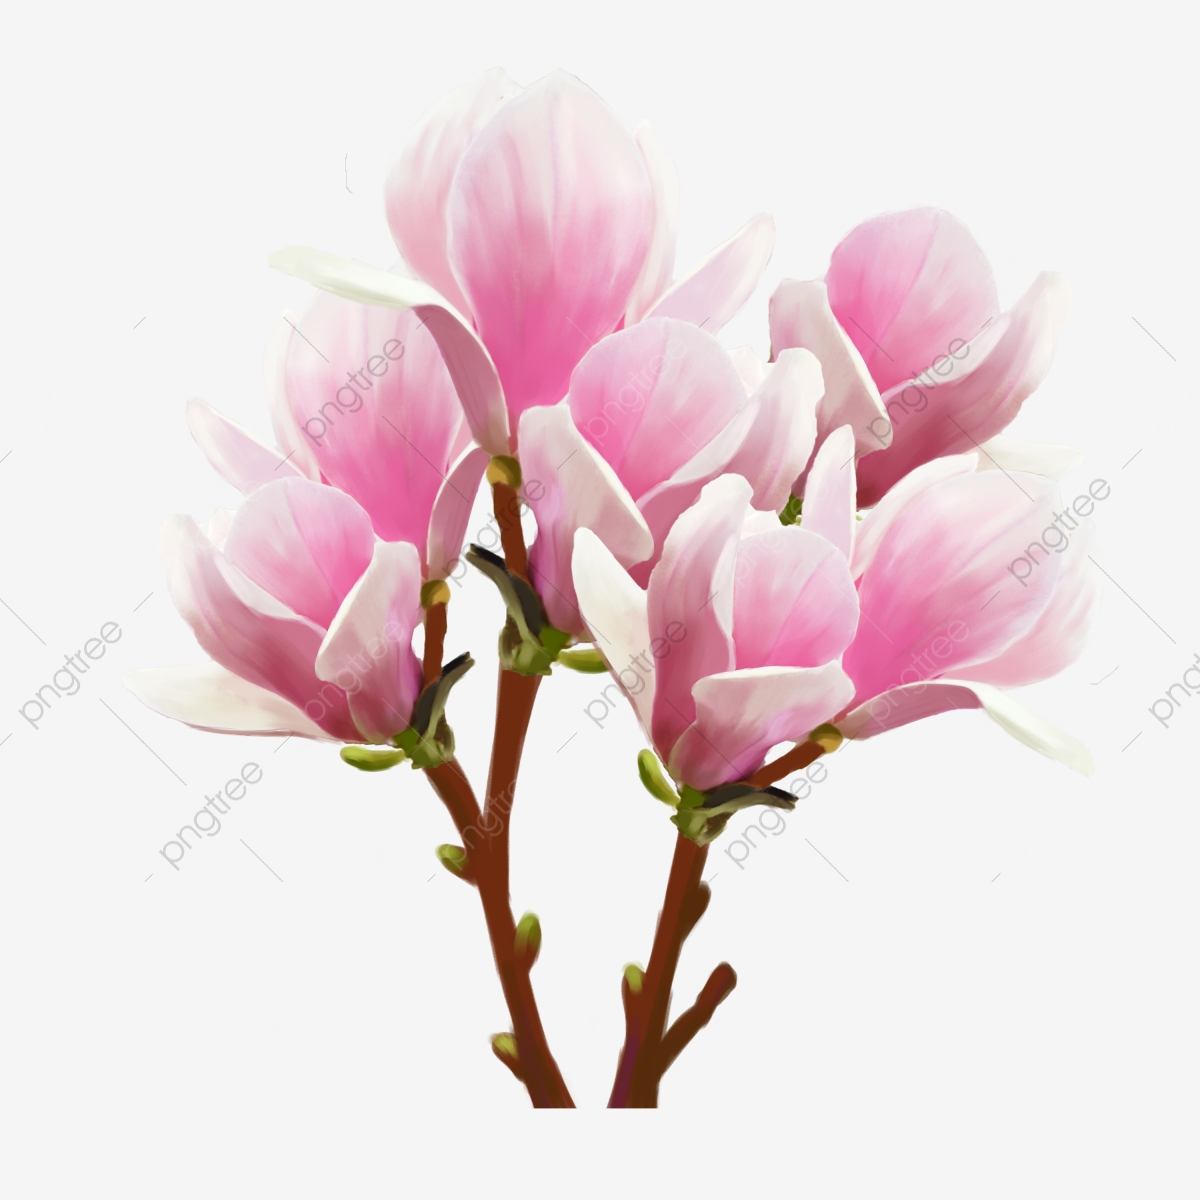 Pink Magnolia Flower White Clump White, Cluster Flower.